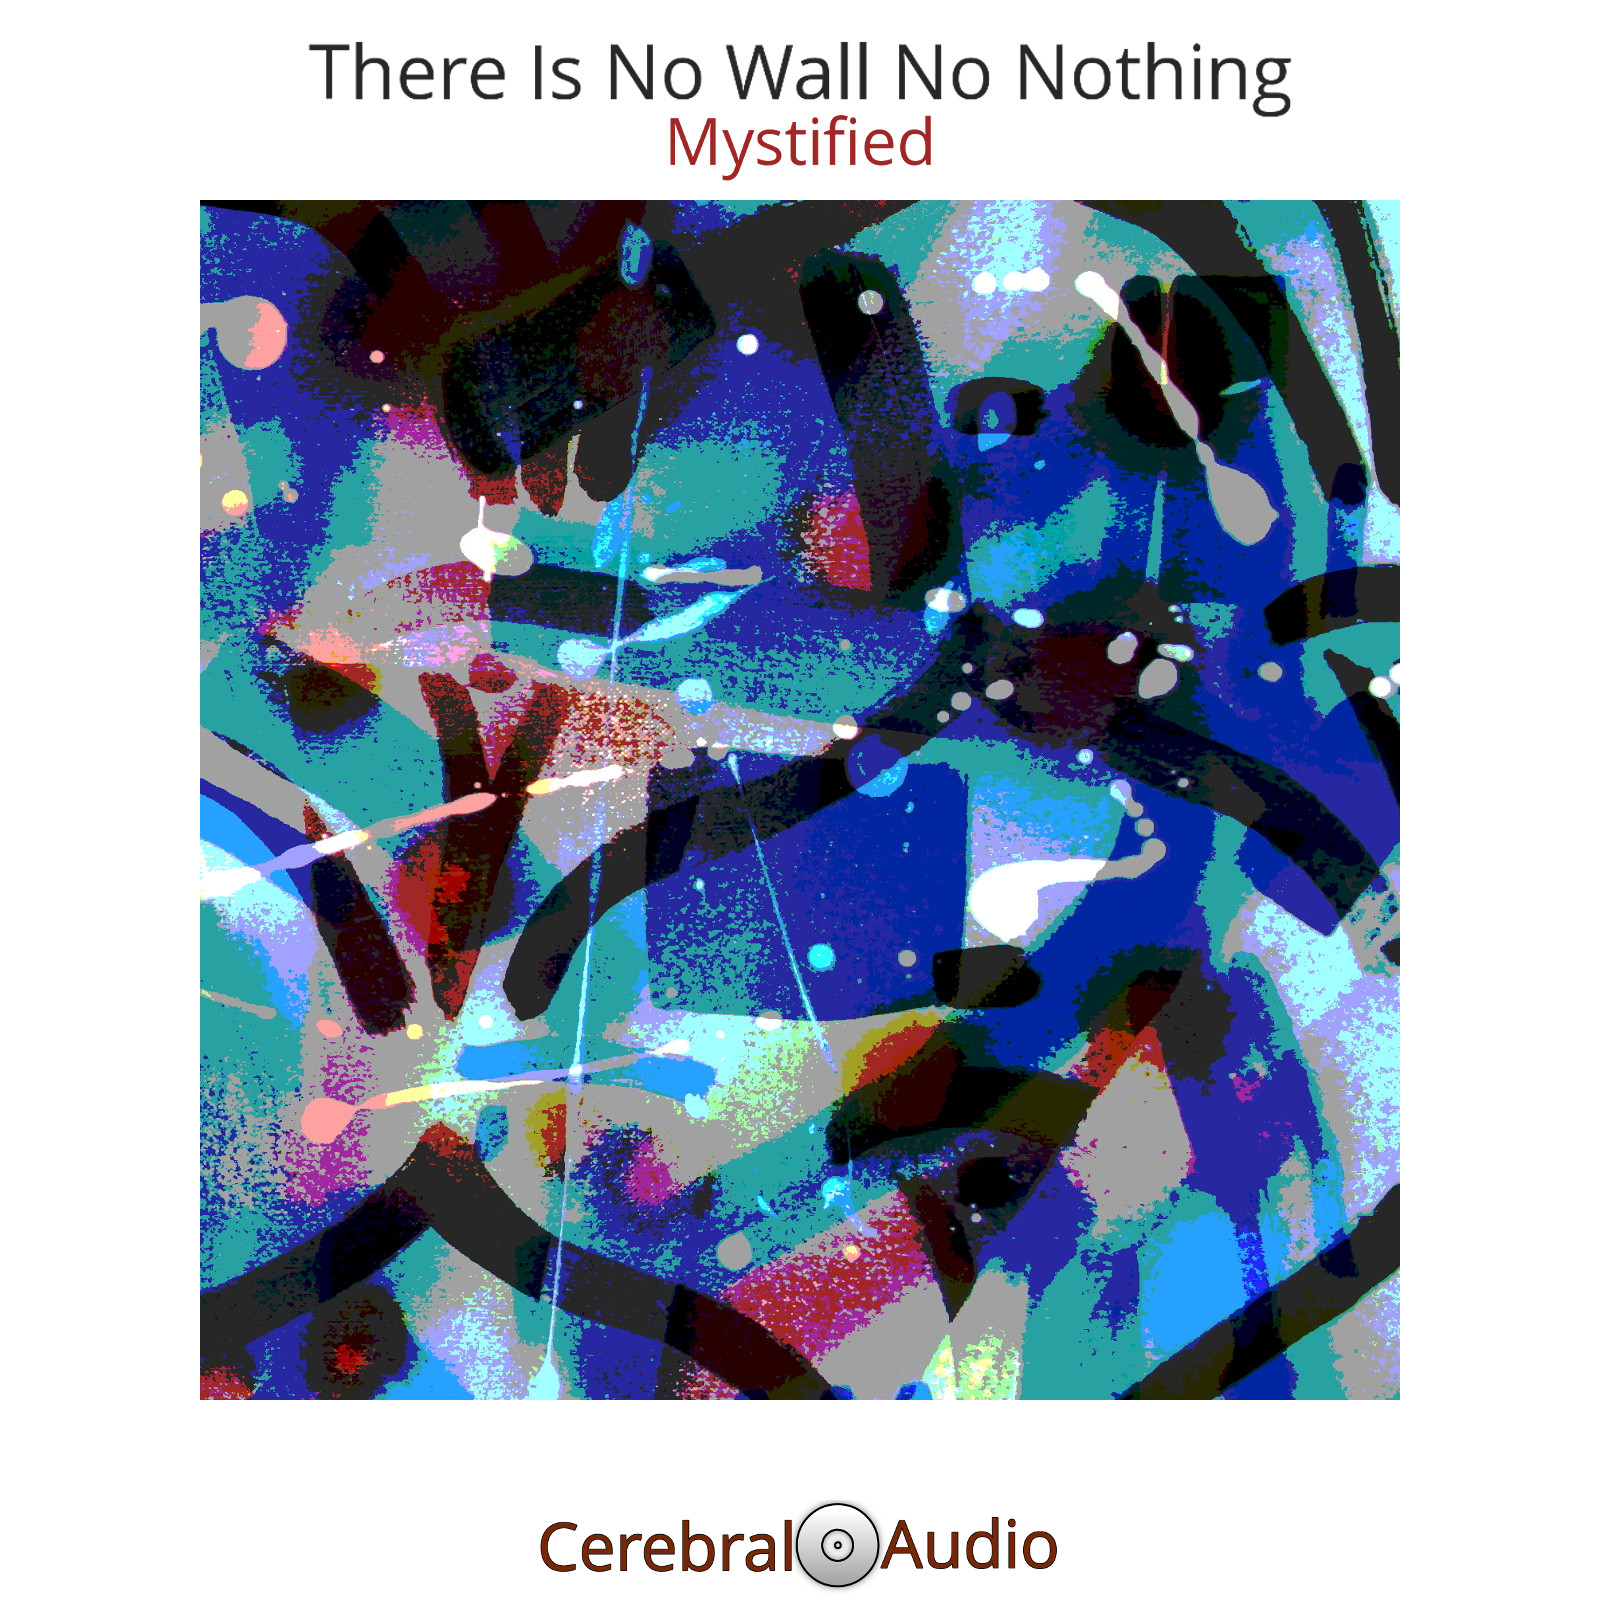 There Is No Wall No Nothing